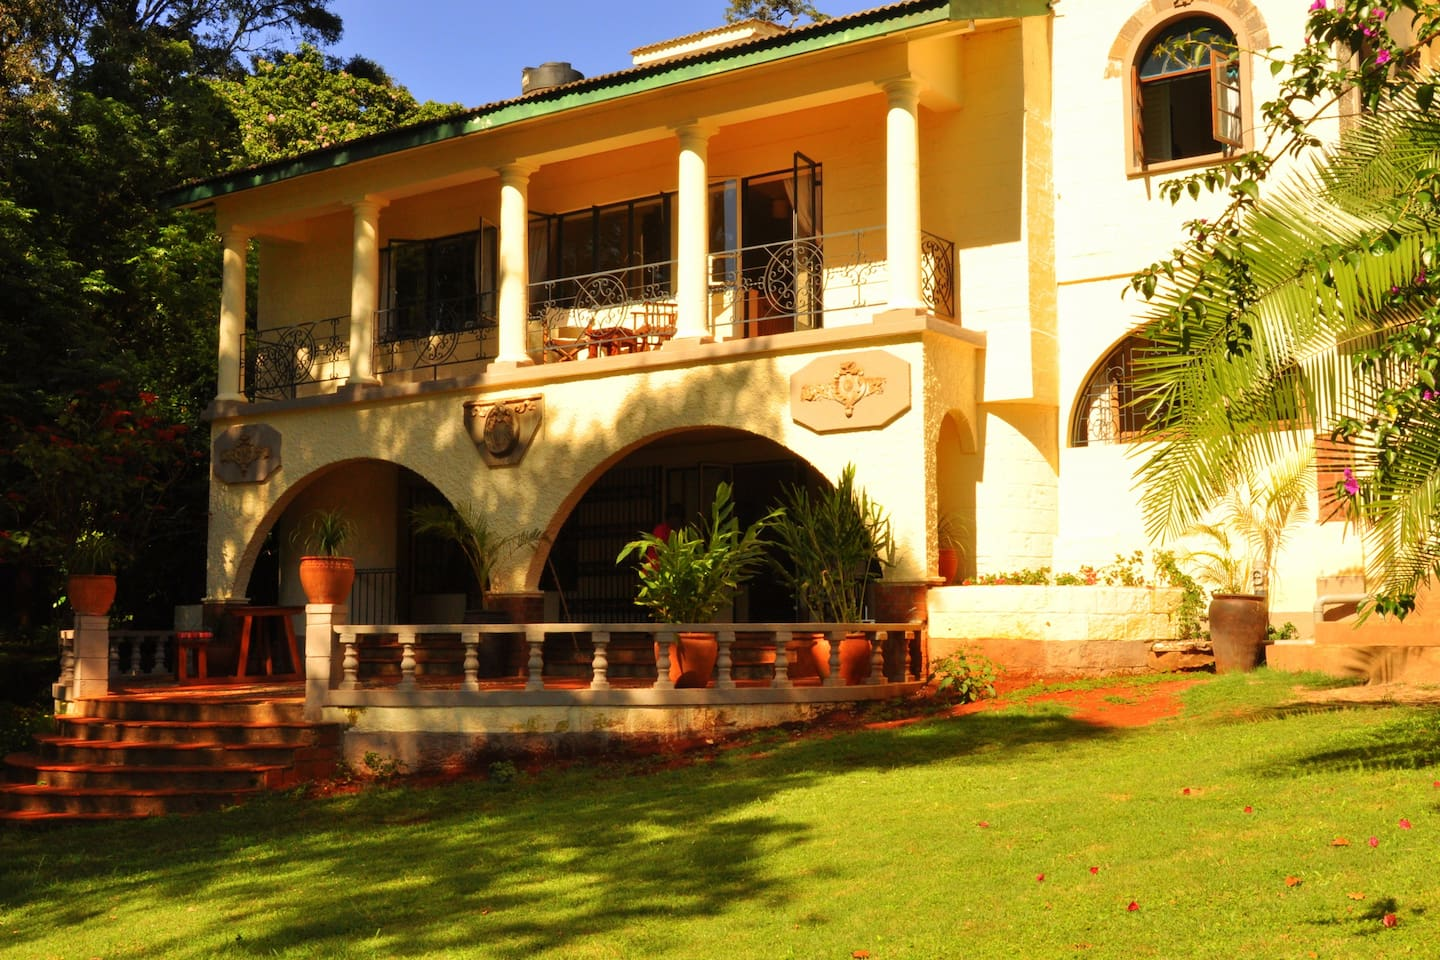 Twiga Suite upstairs $250 per night B&B with views of the Ngong Hills and stunning sunsets and Simba Suite $220 per night B&B downstairs with own private verandah